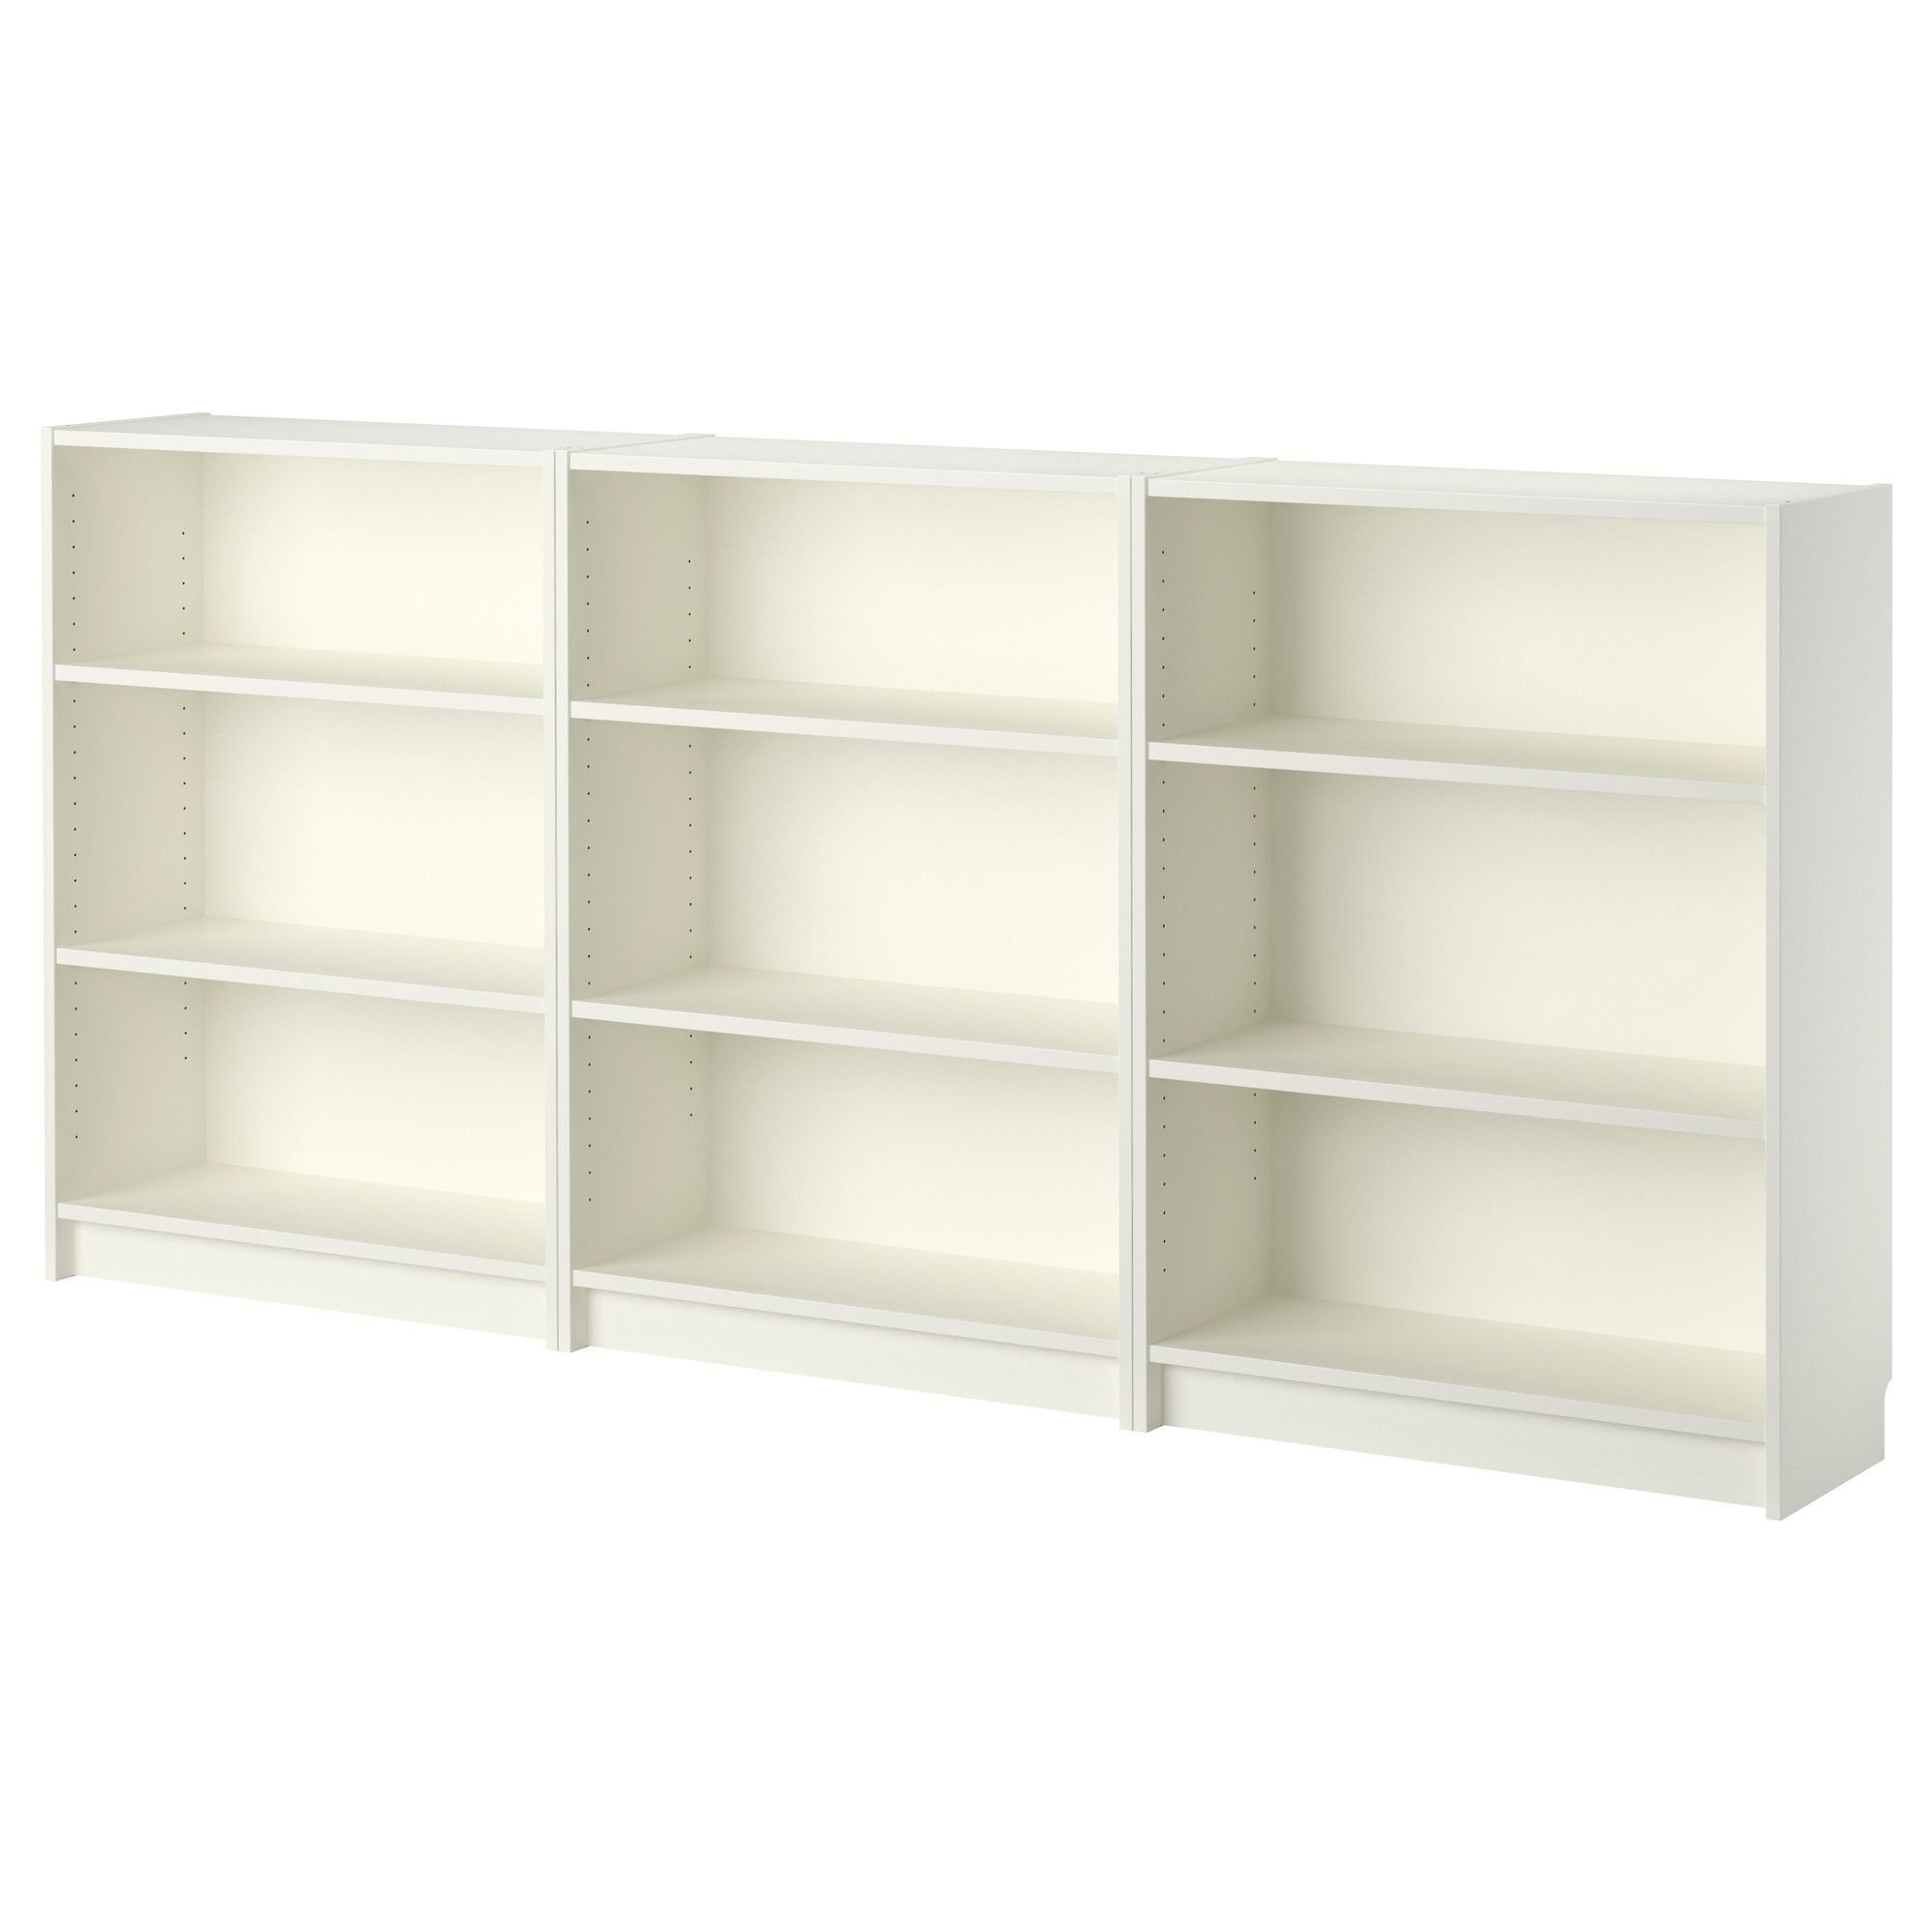 Ikea Billy Bookcase White Billy Bookcase White Bookcase White Ikea Billy And Shelves